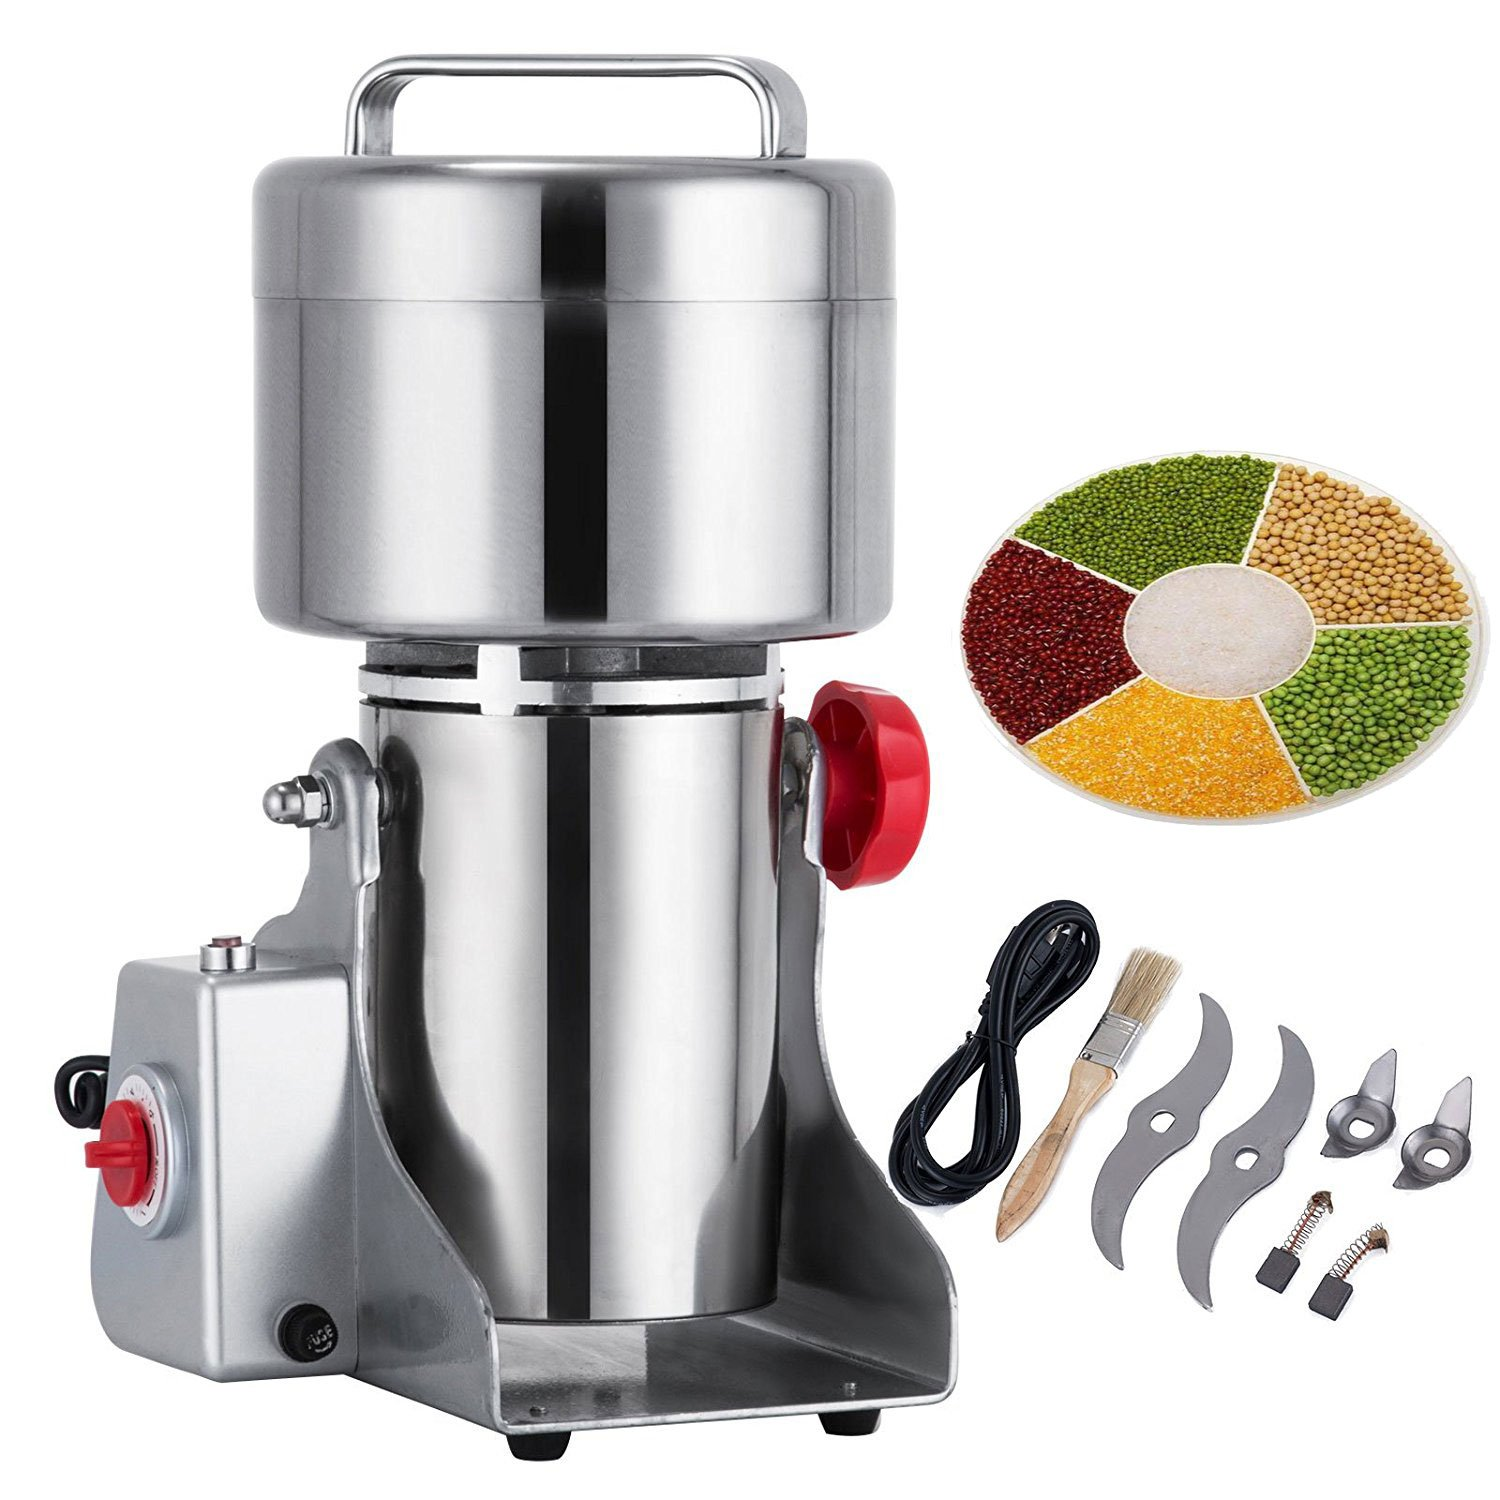 Happybuy Grain Grinder 500g Mill Powder Machine Swing Type Commercial Electric Grain Mill Grinder for Herb Pulverizer Food Grade Stainless Steel (500g)